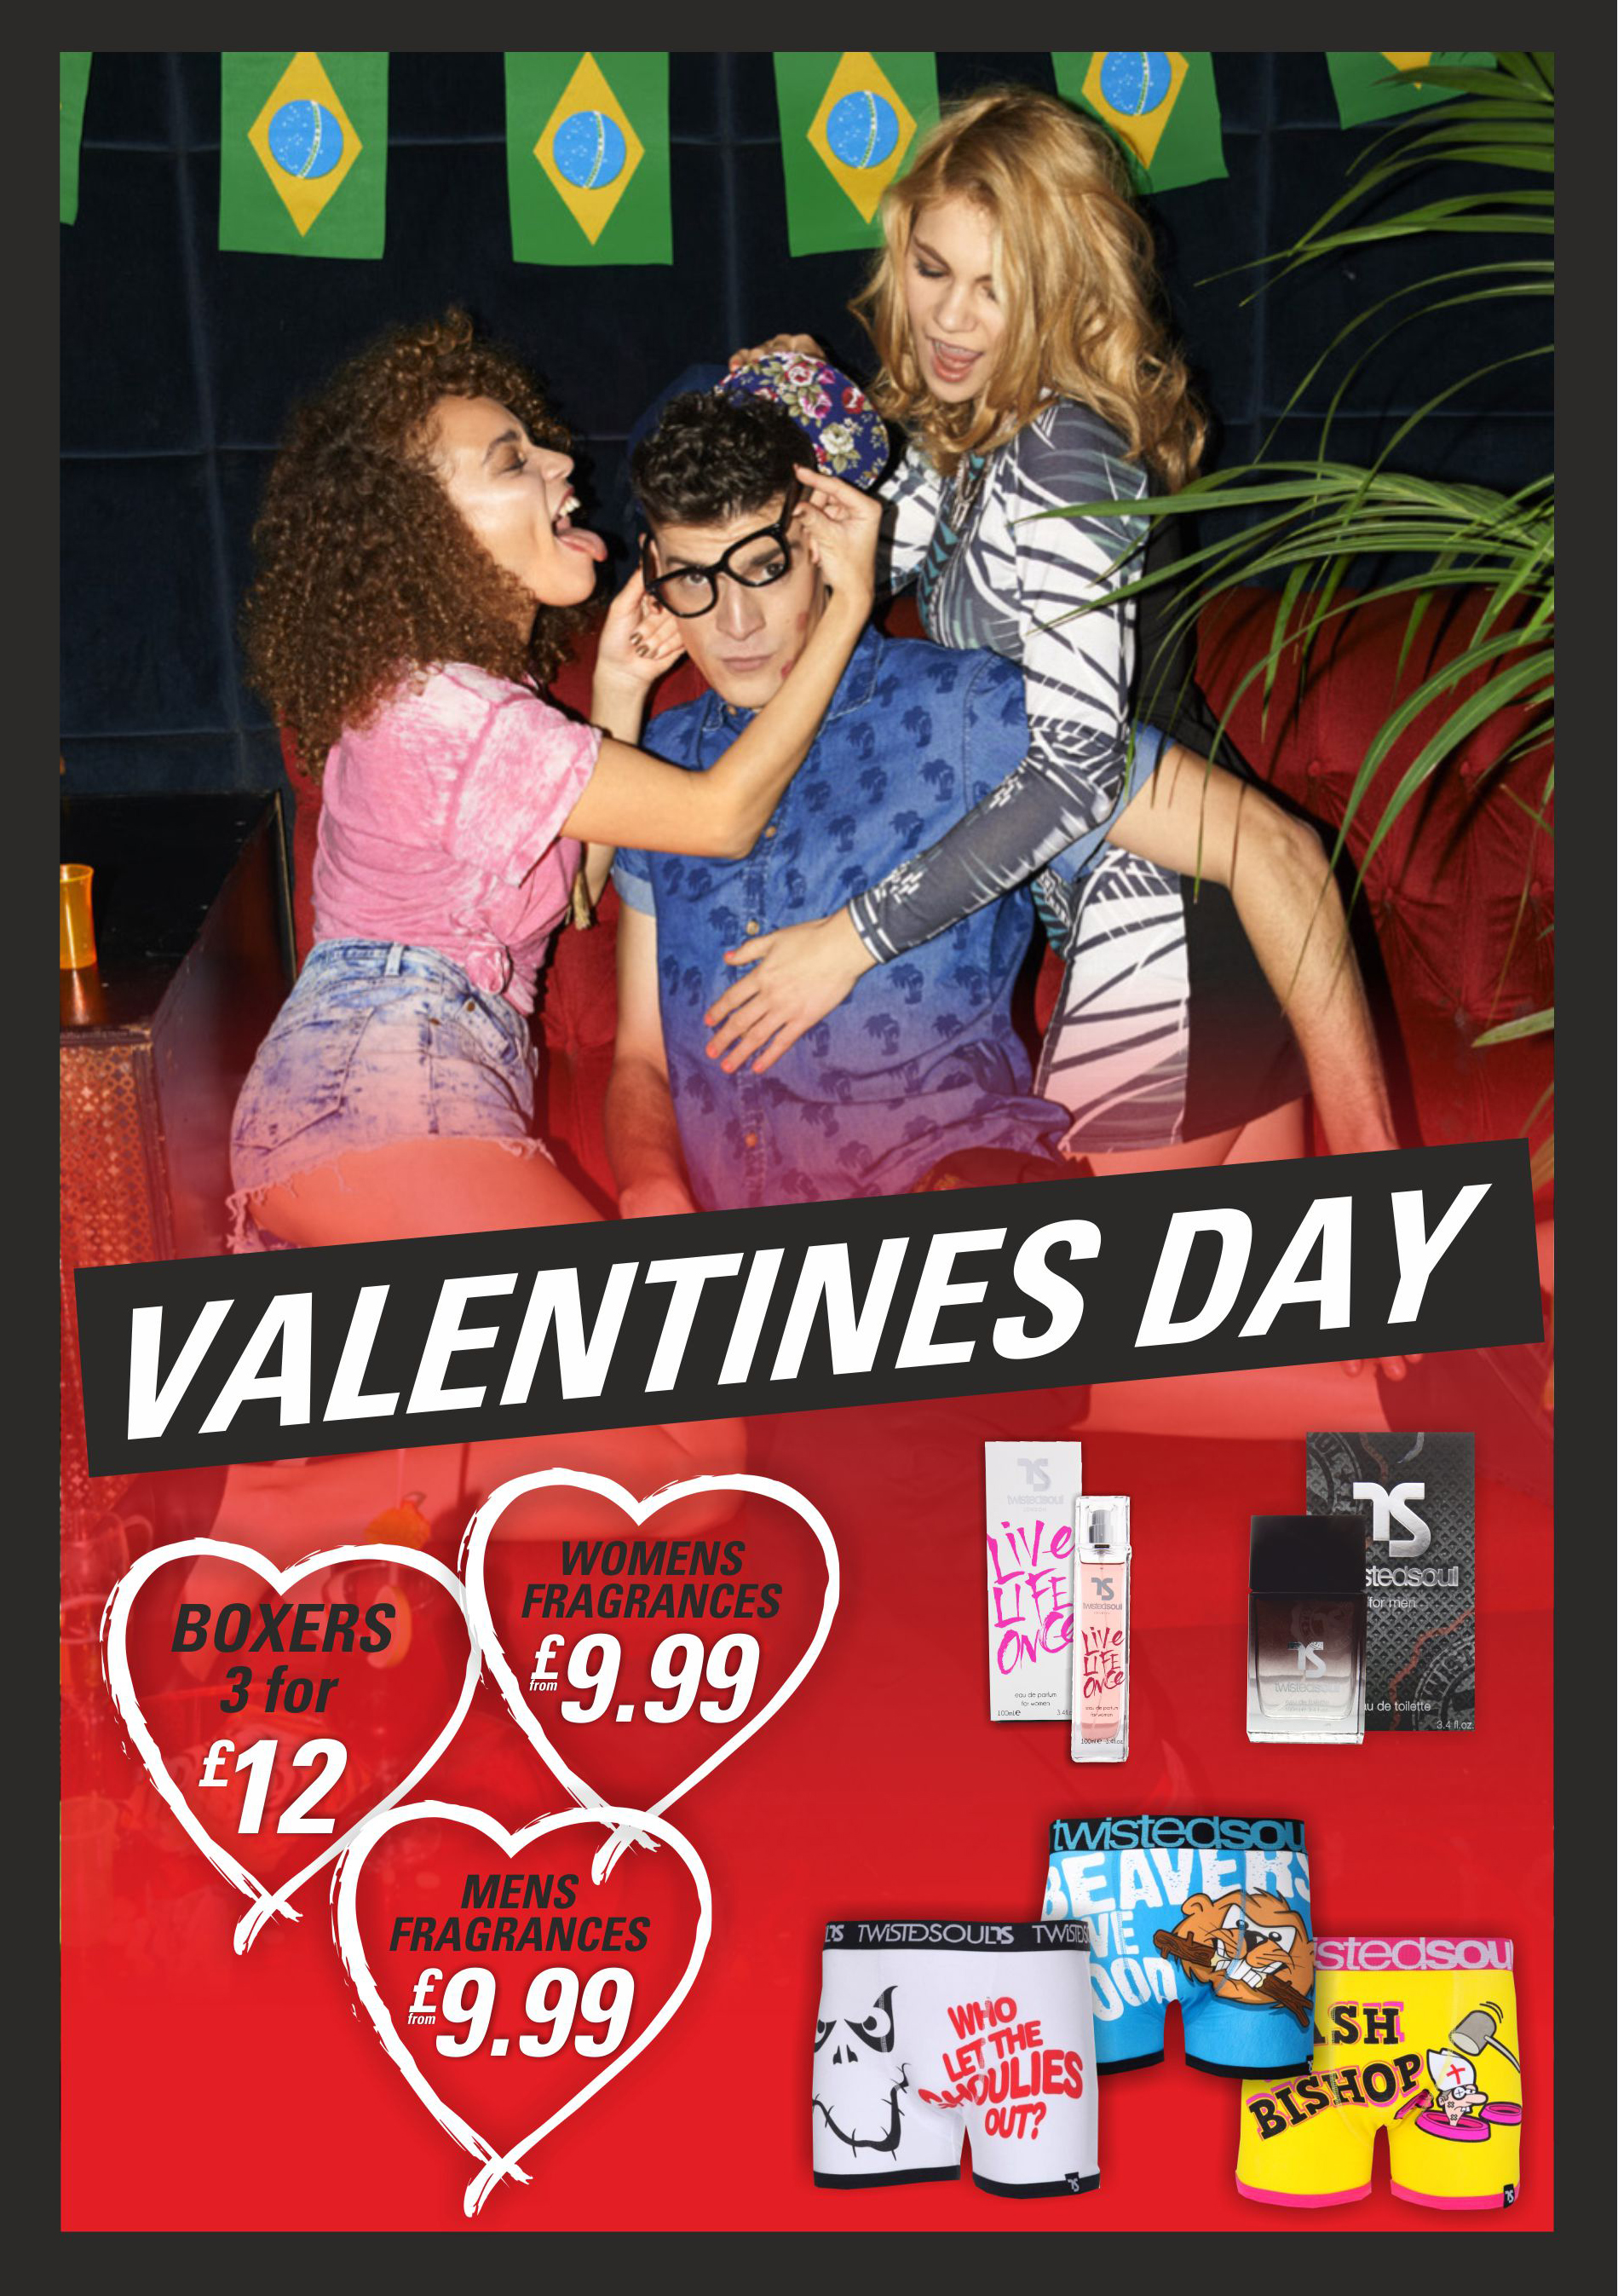 Blue Inc, New Square, West Bromwich – Valentine's Special Offers